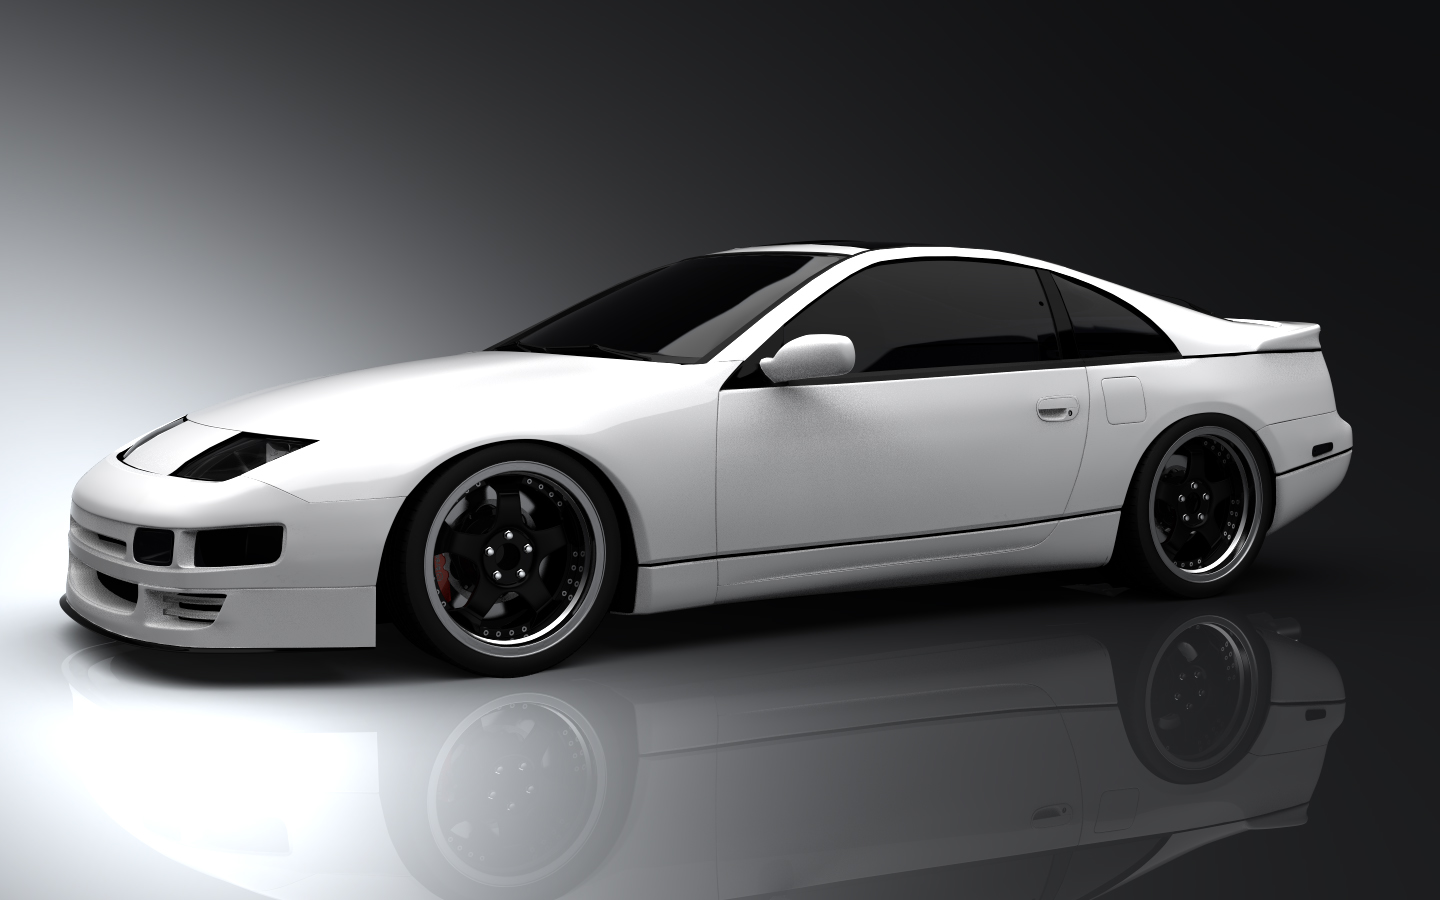 nissan 300zx photo wallpaper 1440x900 17520. Black Bedroom Furniture Sets. Home Design Ideas